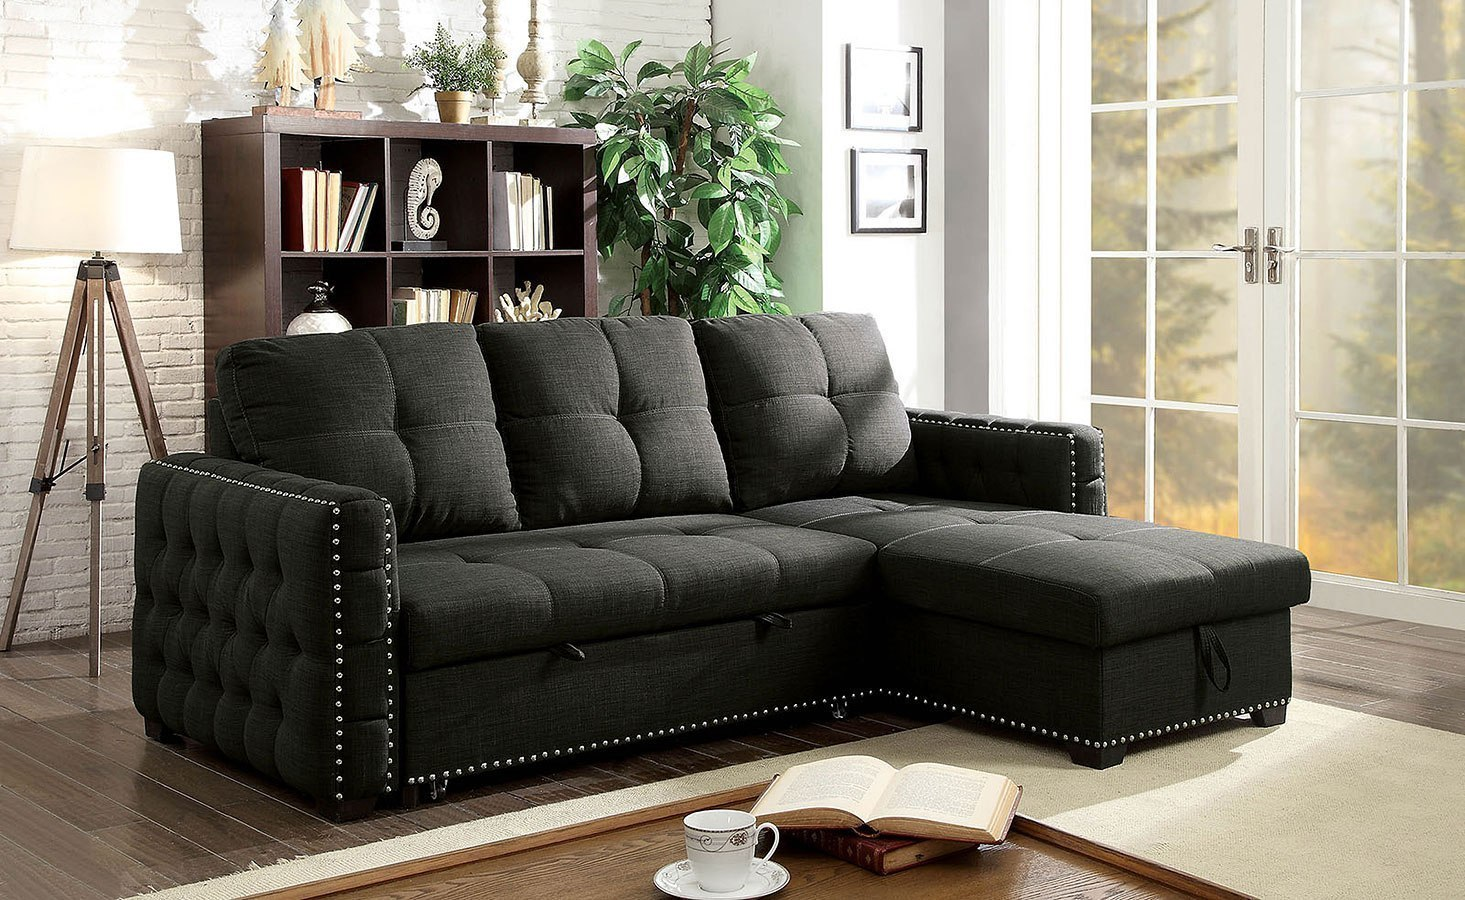 Demi Sectional w Pull Out Sleeper by Furniture of America